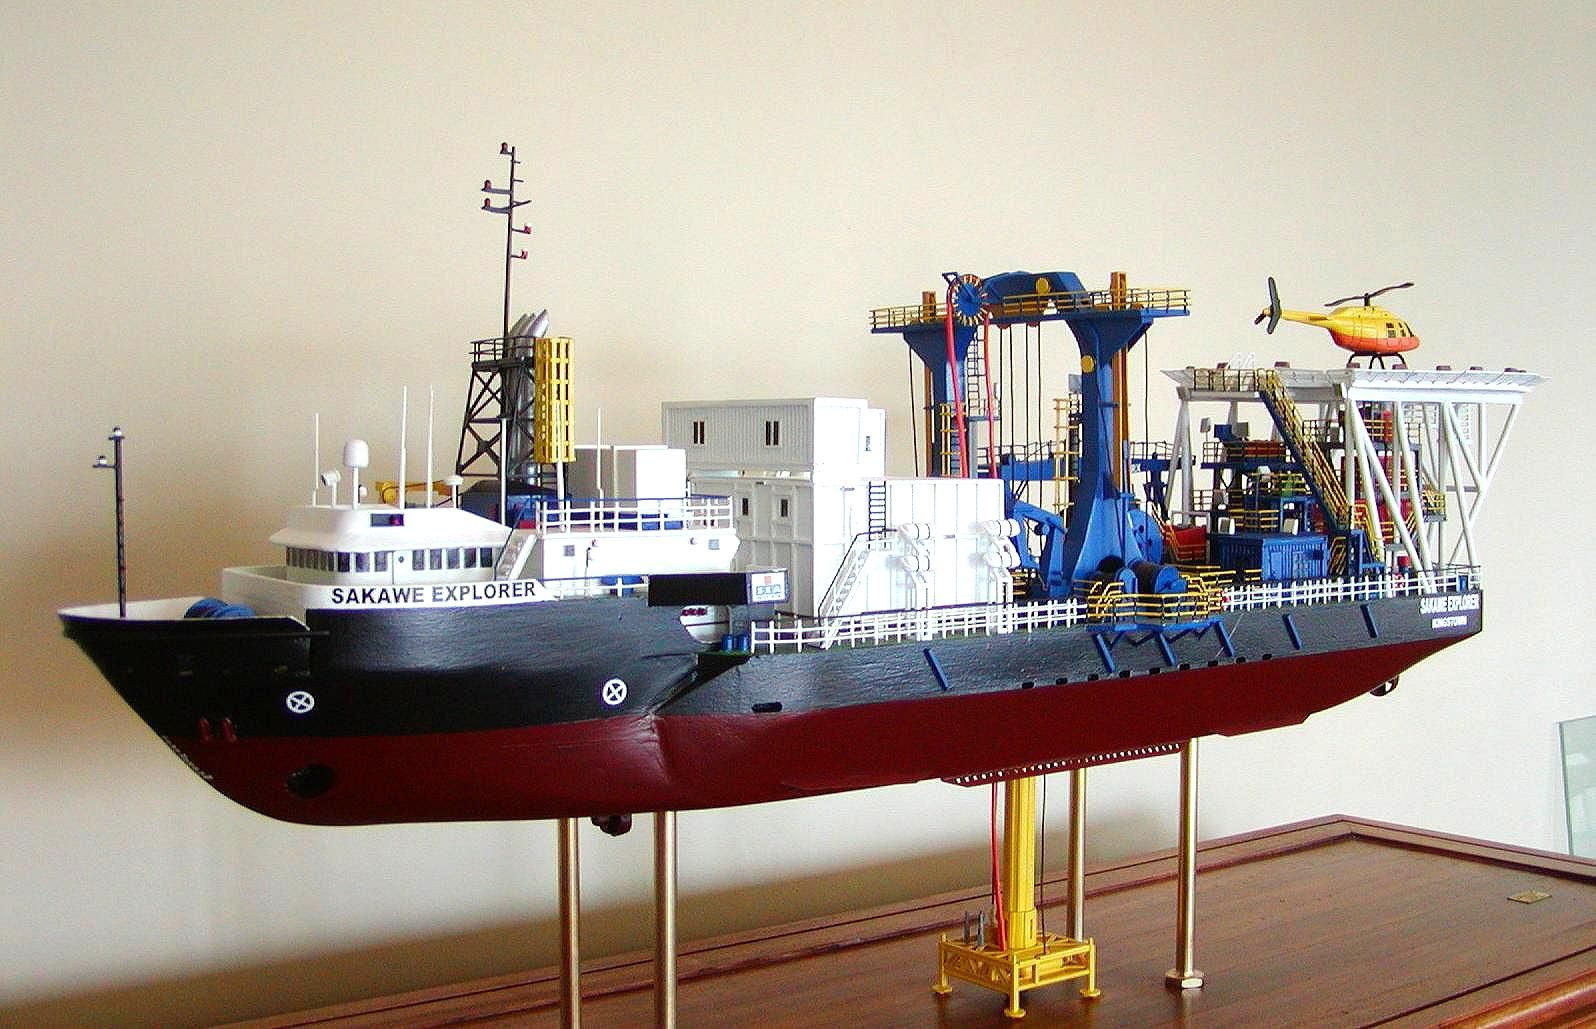 Modern Ship Design : Modern model ships sakawe explorer replica shipbuilders